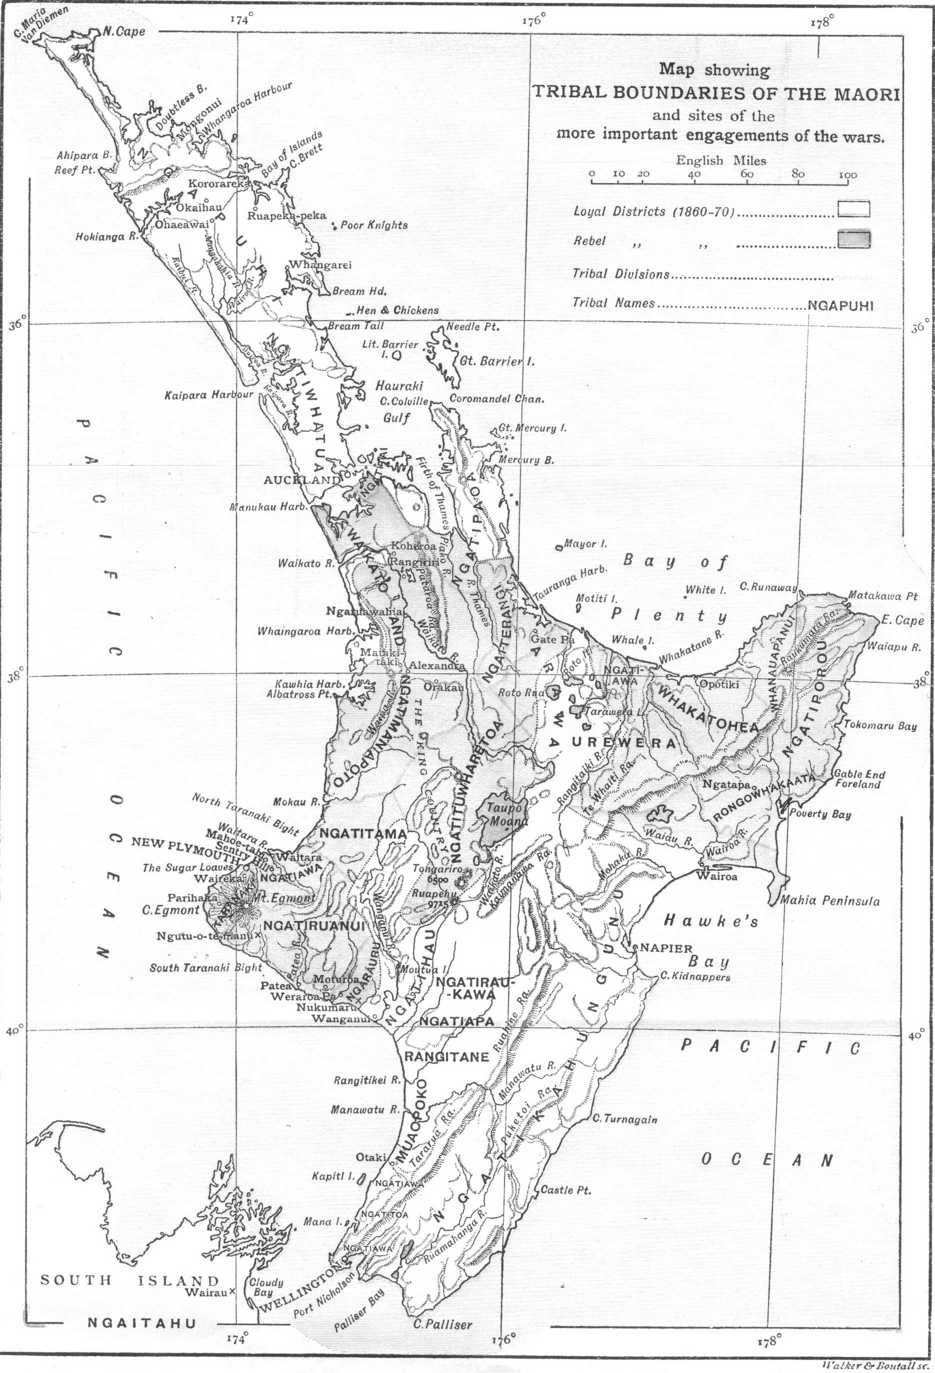 Map showing Maori tribal boundaries in the North Island of New